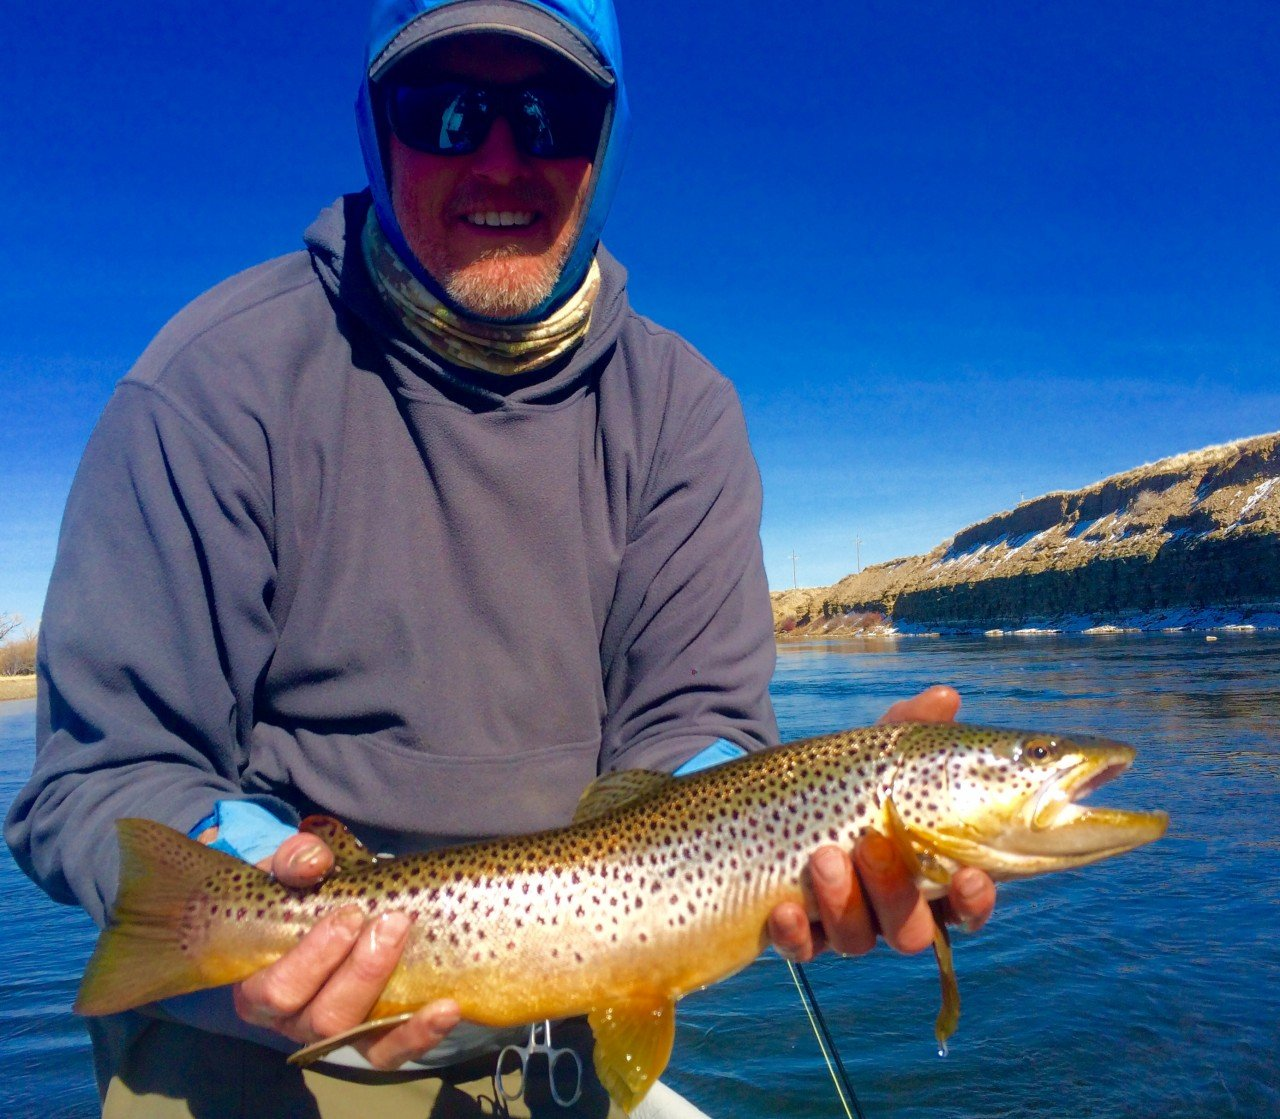 Green river bighorn river fishing reports dunoir fishing for Bighorn river fishing report